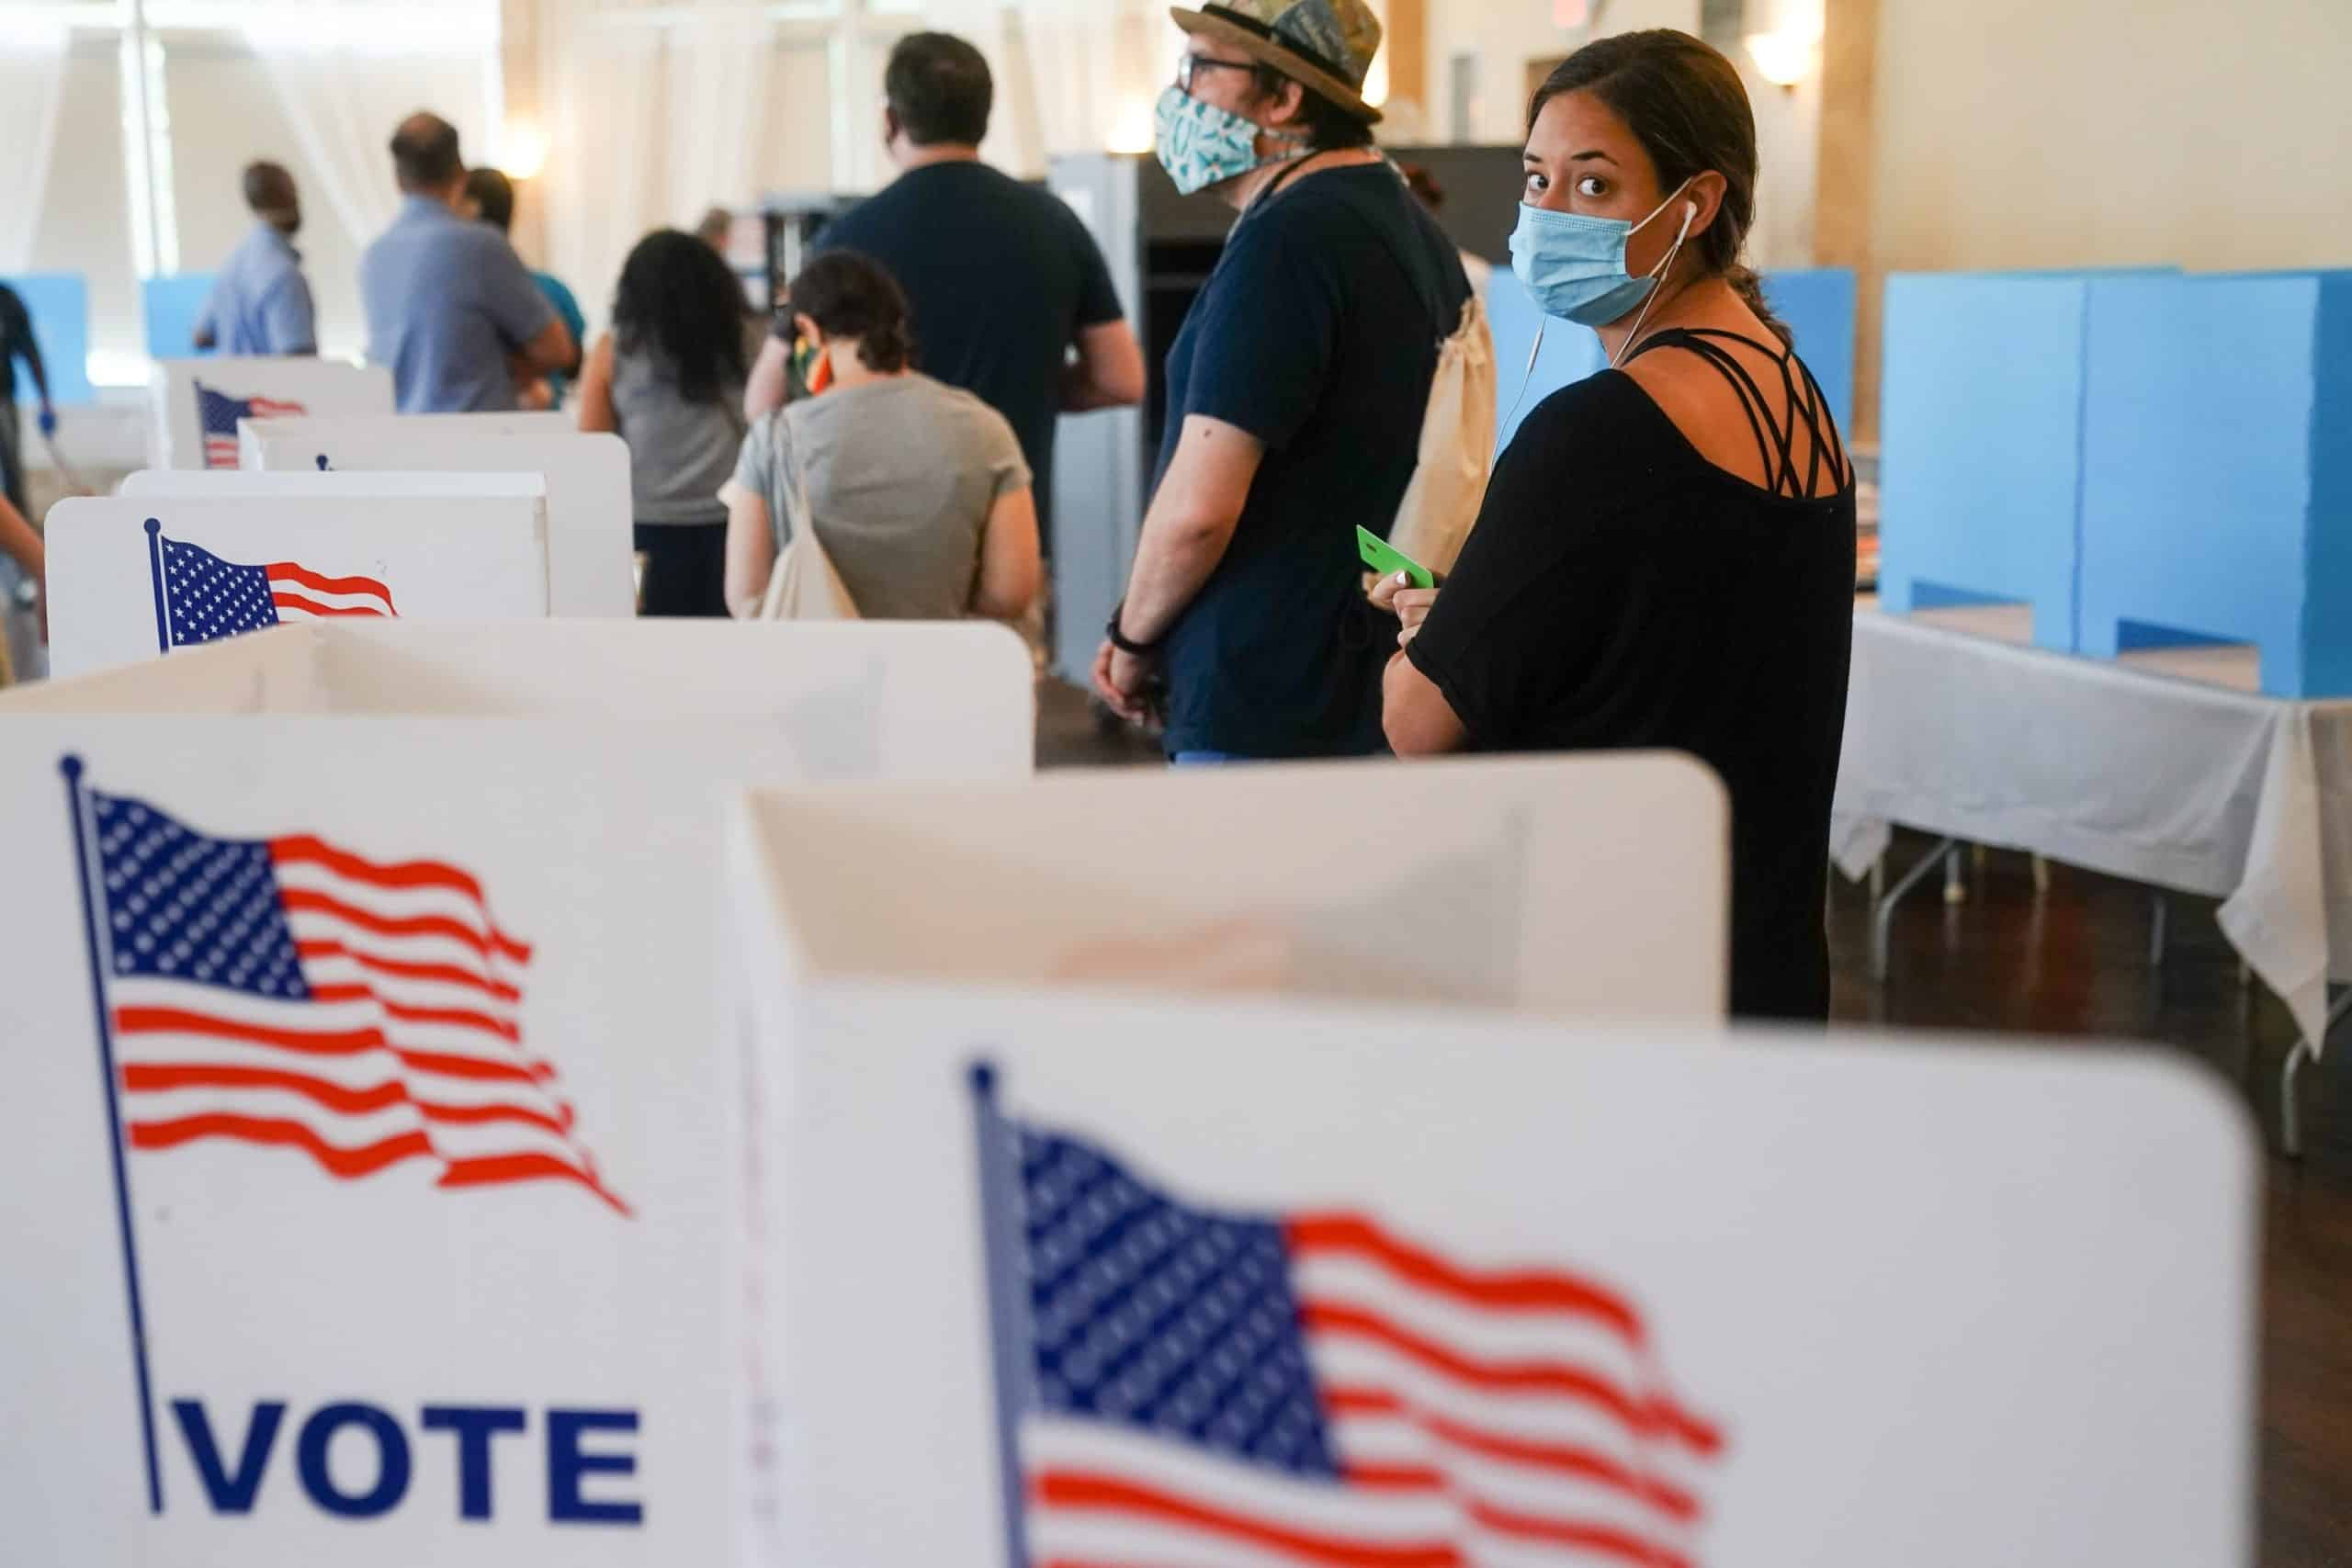 The experts doubt the voting machines for the counting of votes